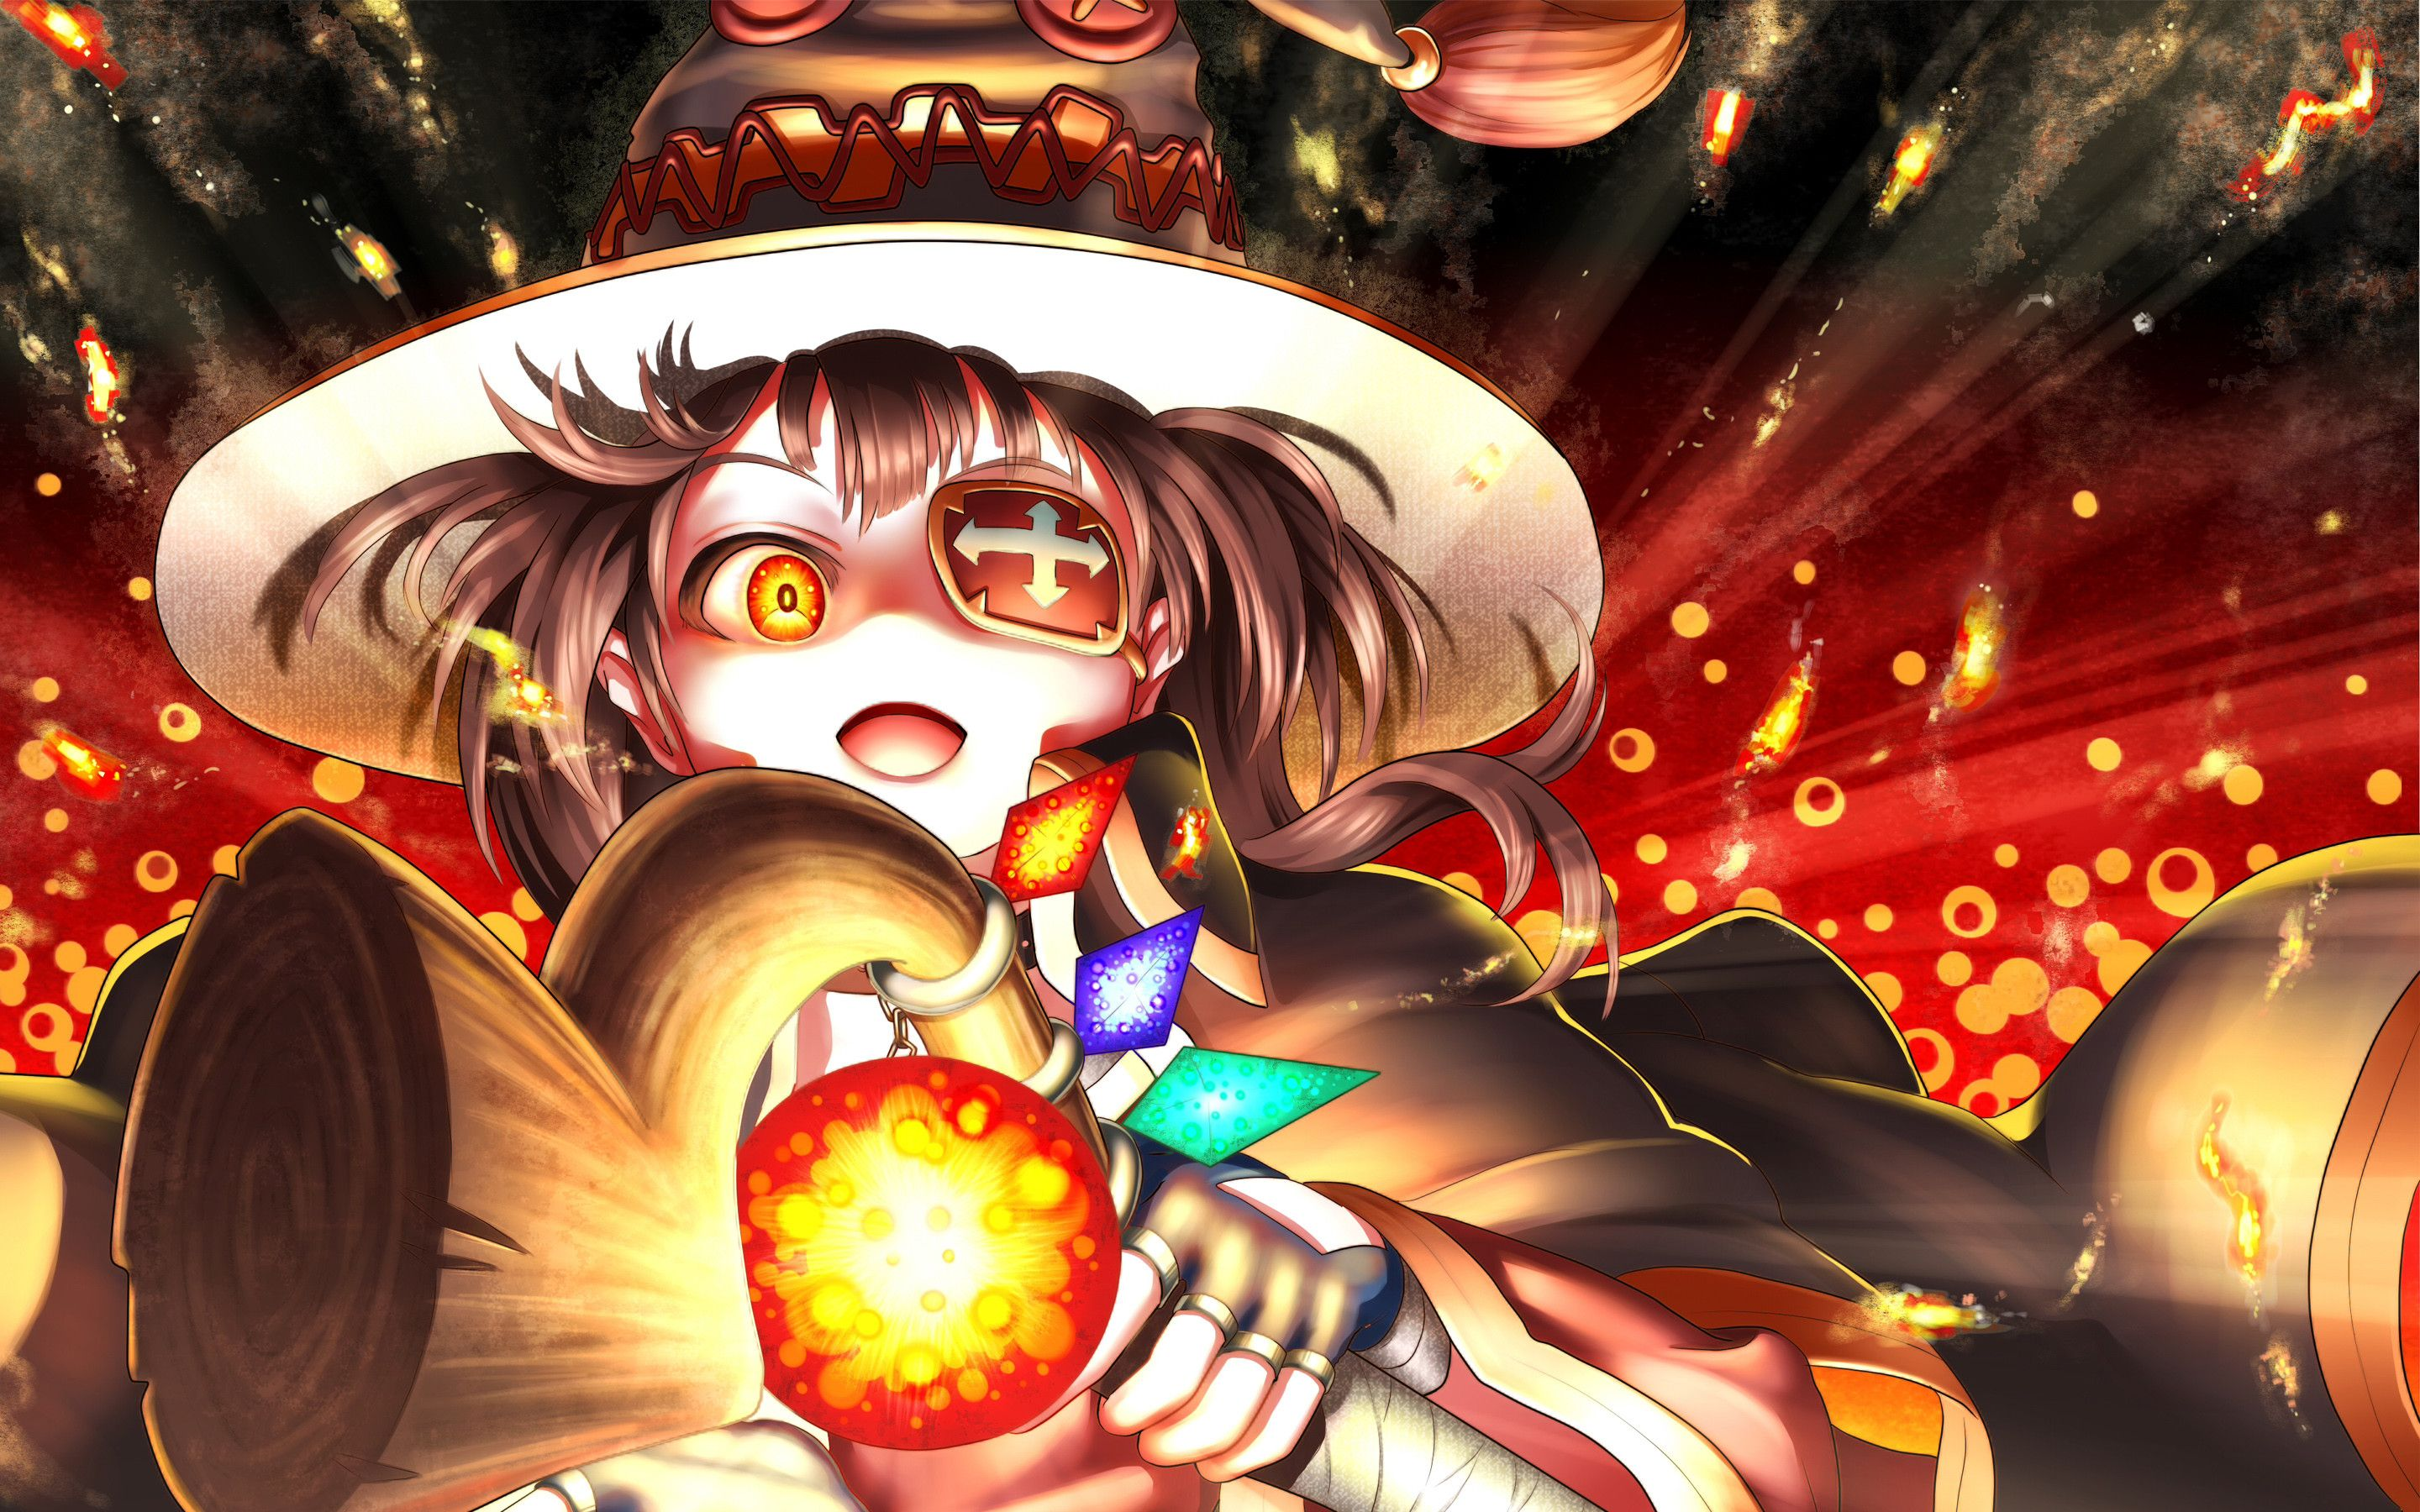 Res 2880x1800 Megumin Anime 4k Hd Anime Wallpapers Anime Wallpaper Download Anime Wallpaper